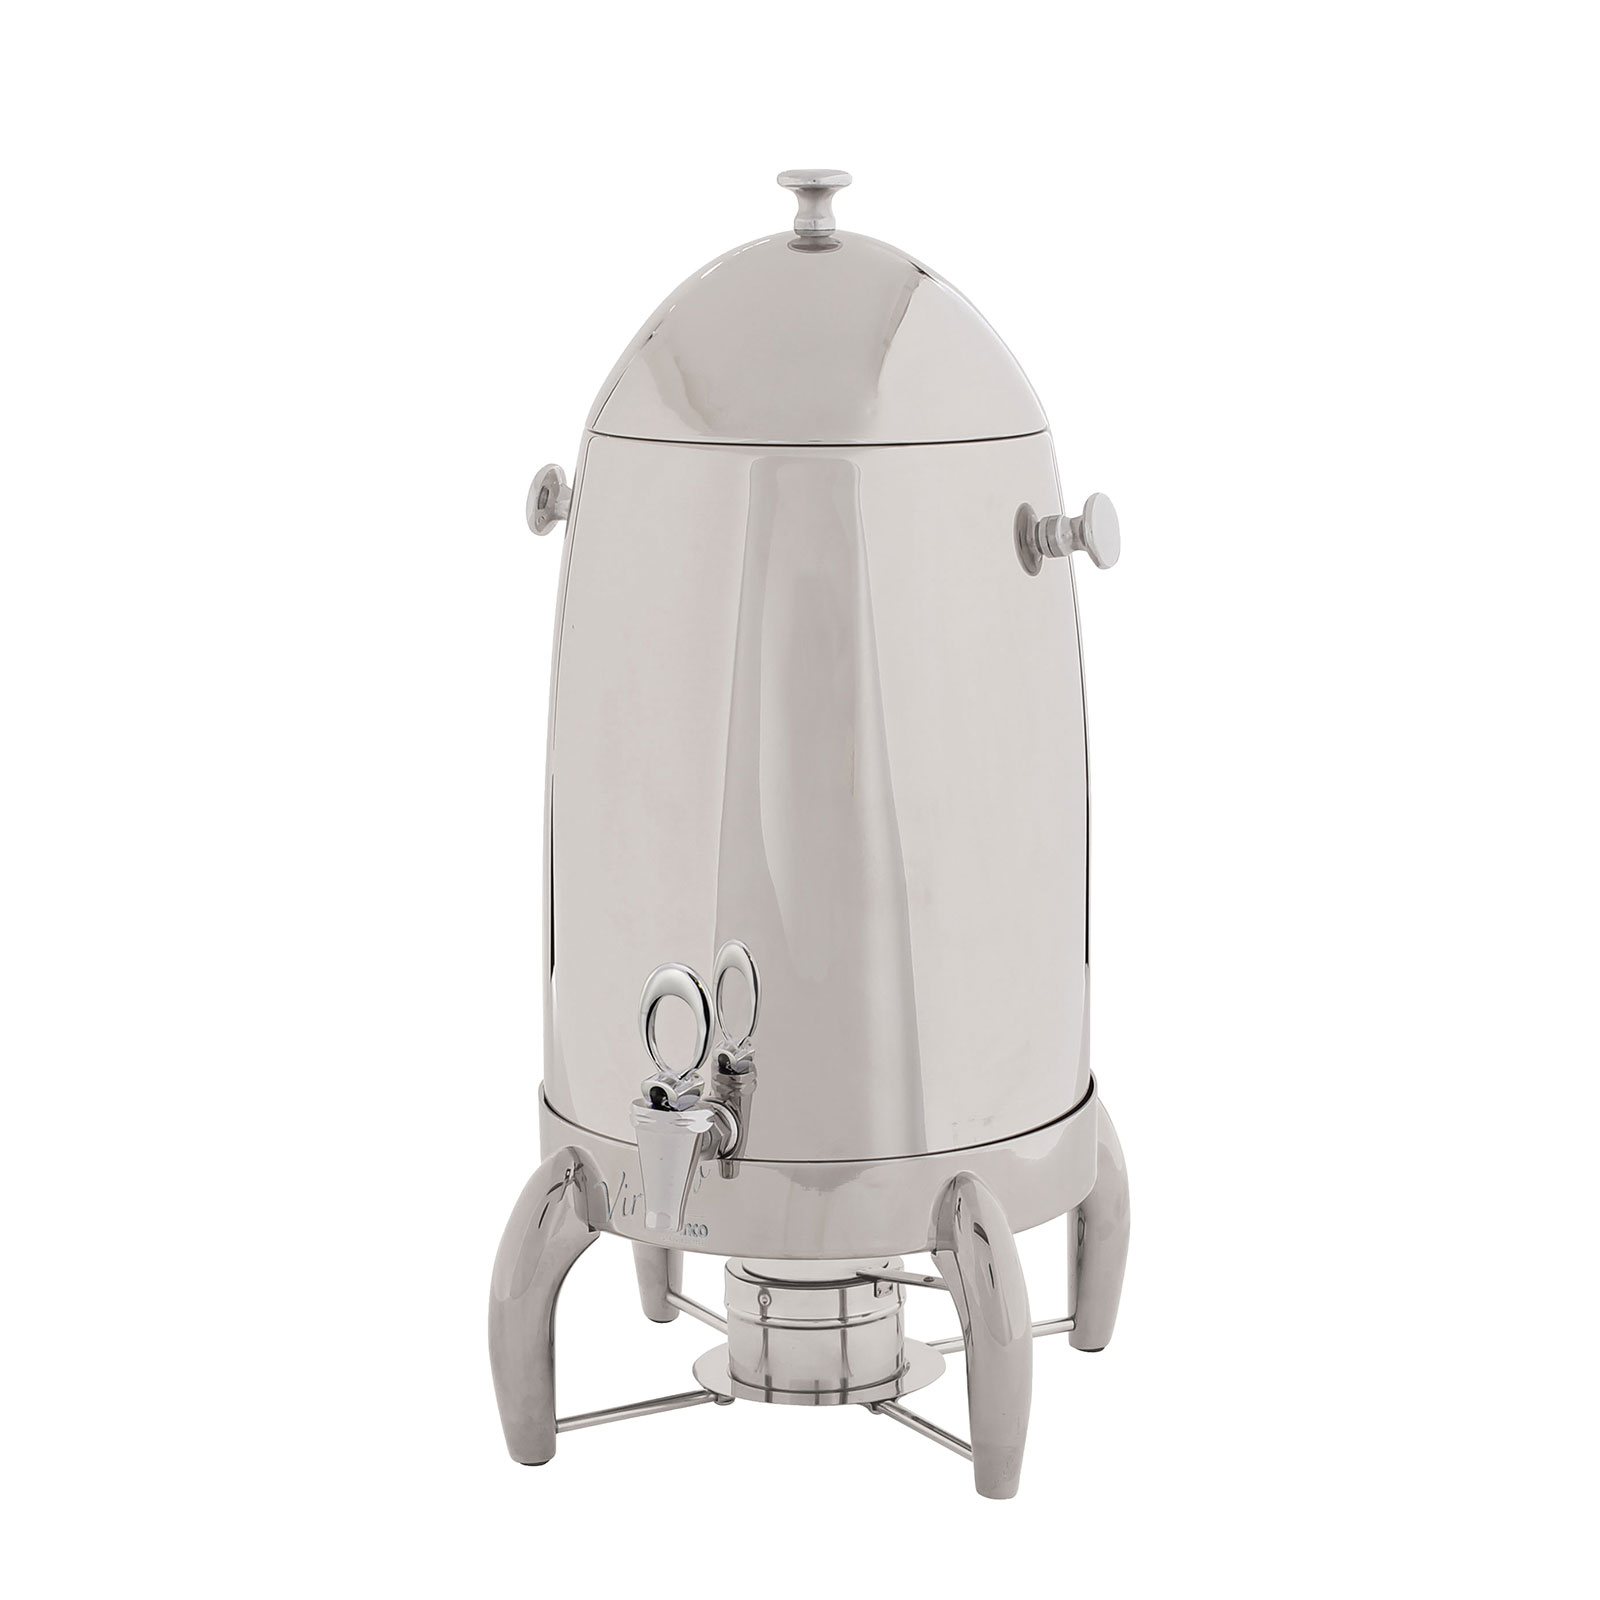 Winco 905B coffee chafer urn